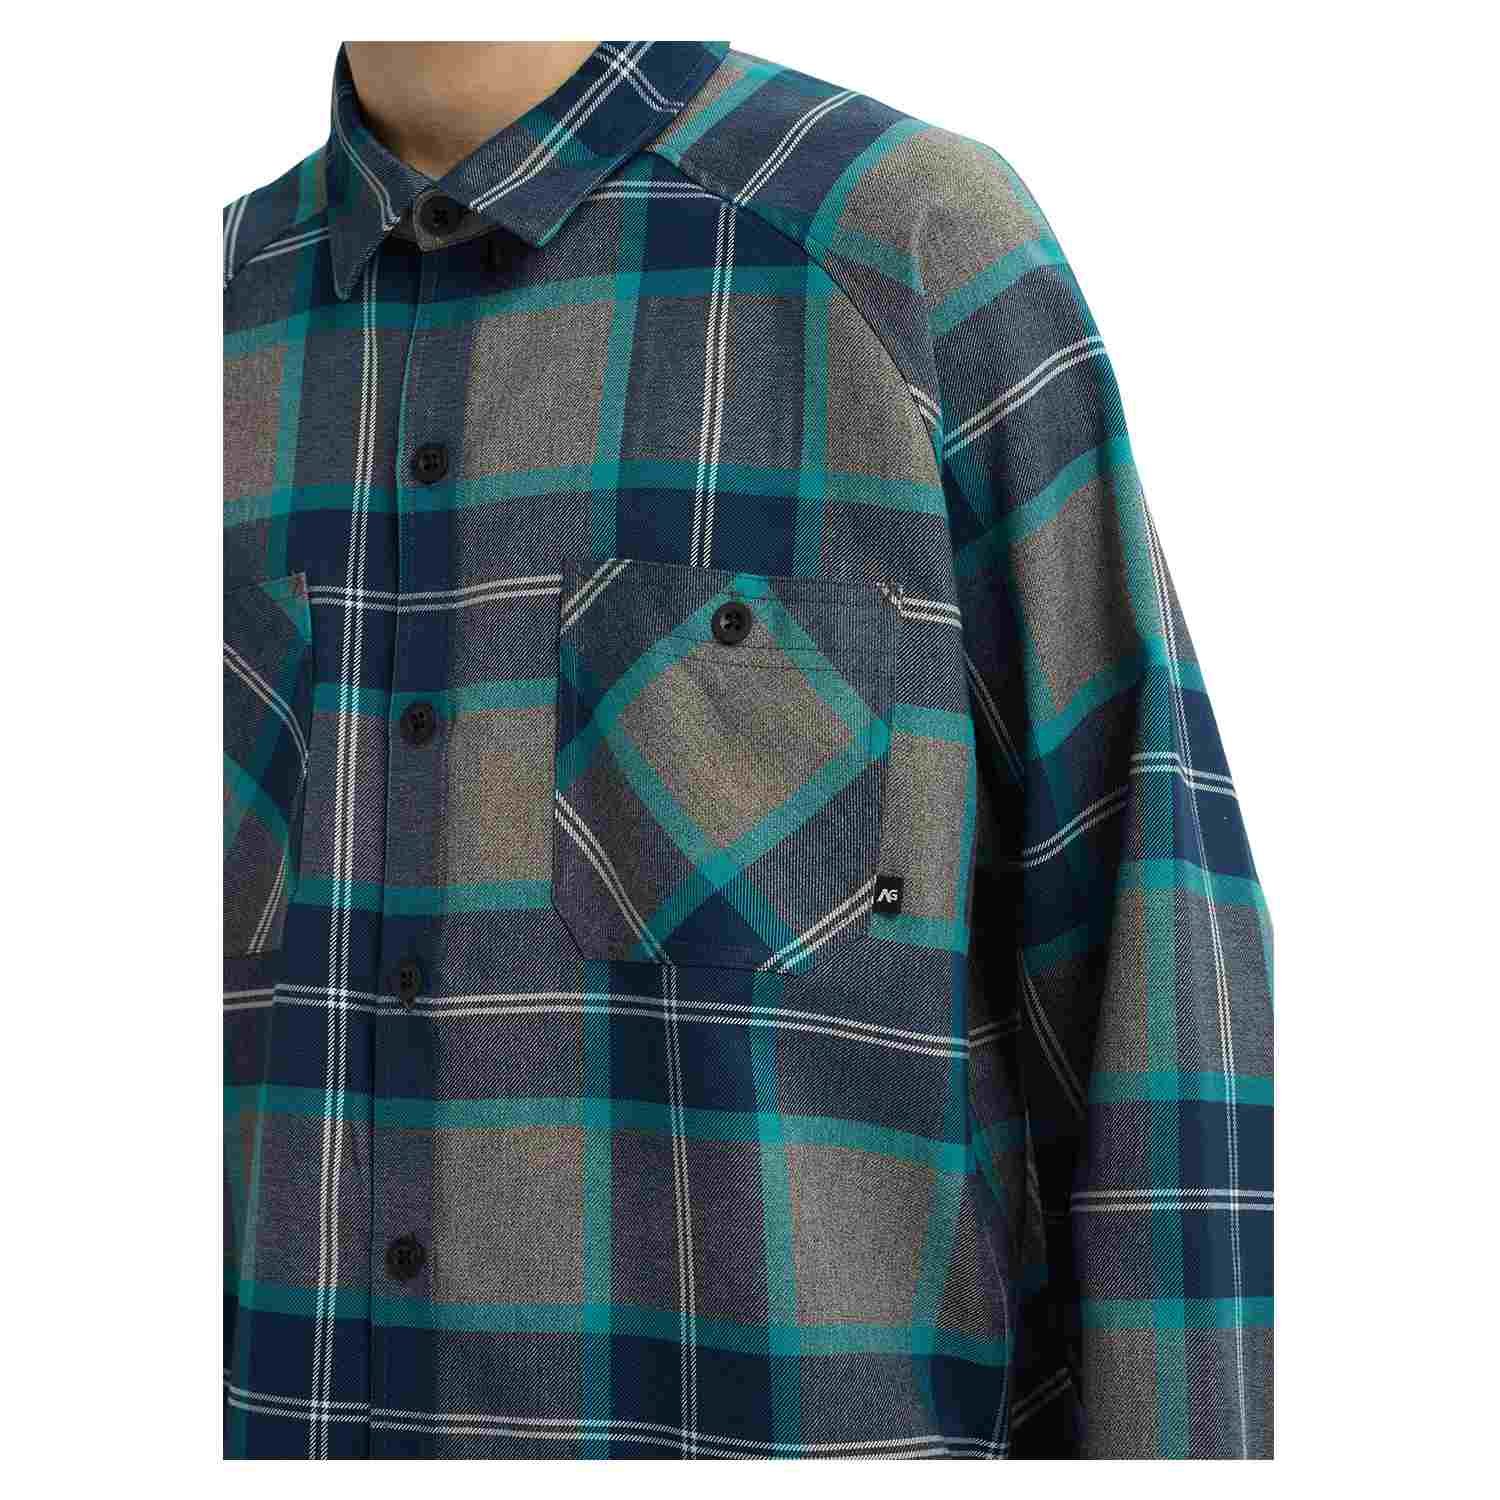 Analog Transmission Flannel Shirt Green/Blue Mind Plaid 2020